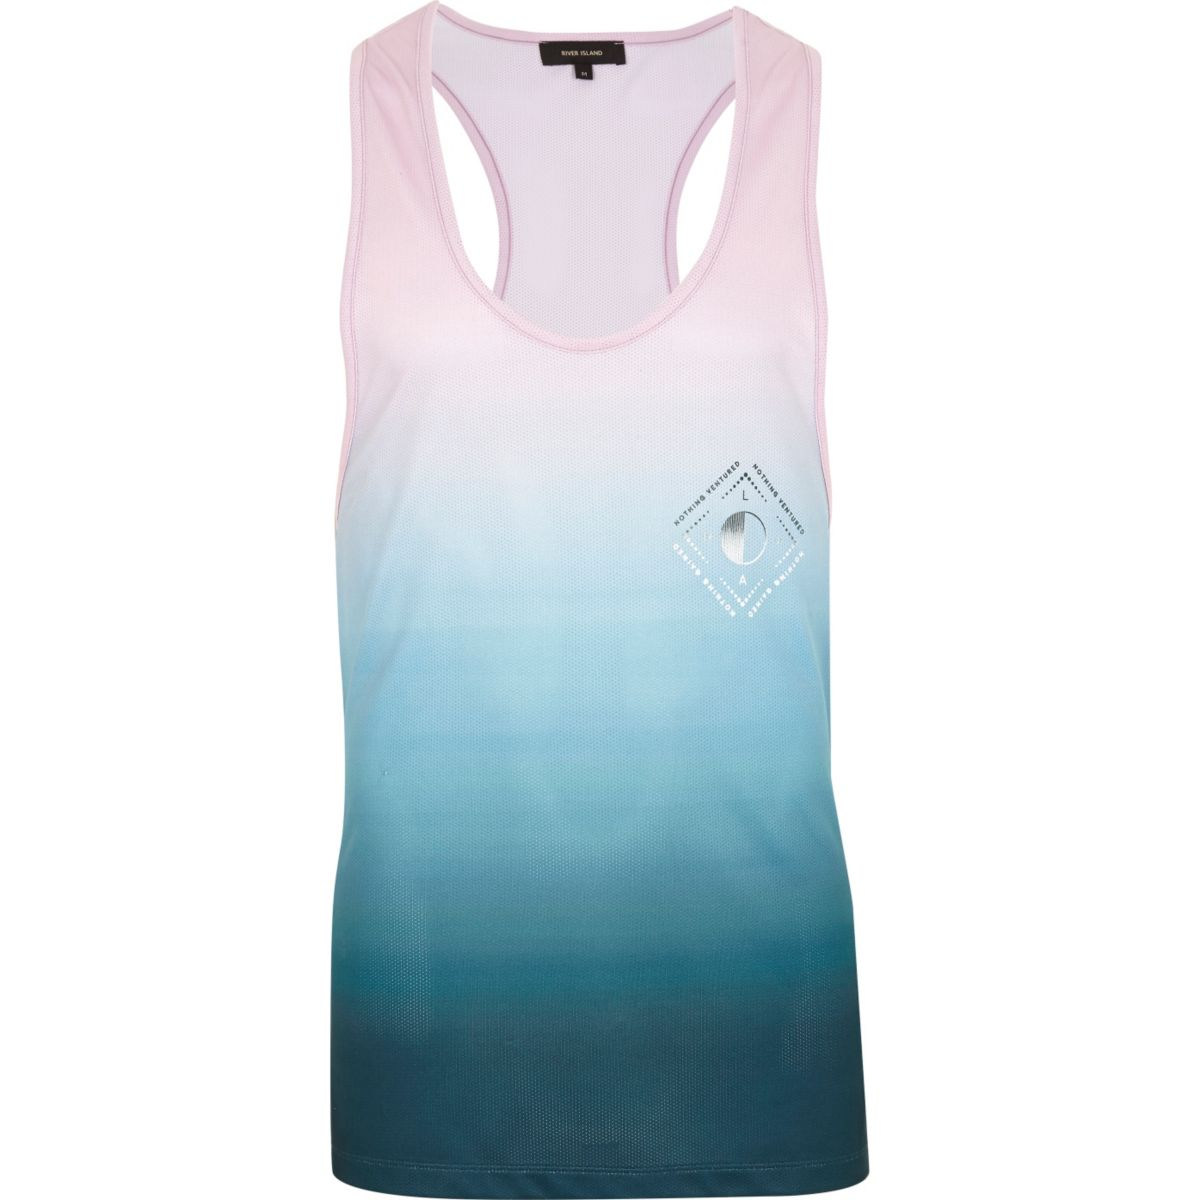 Pink and blue fade print racer back tank